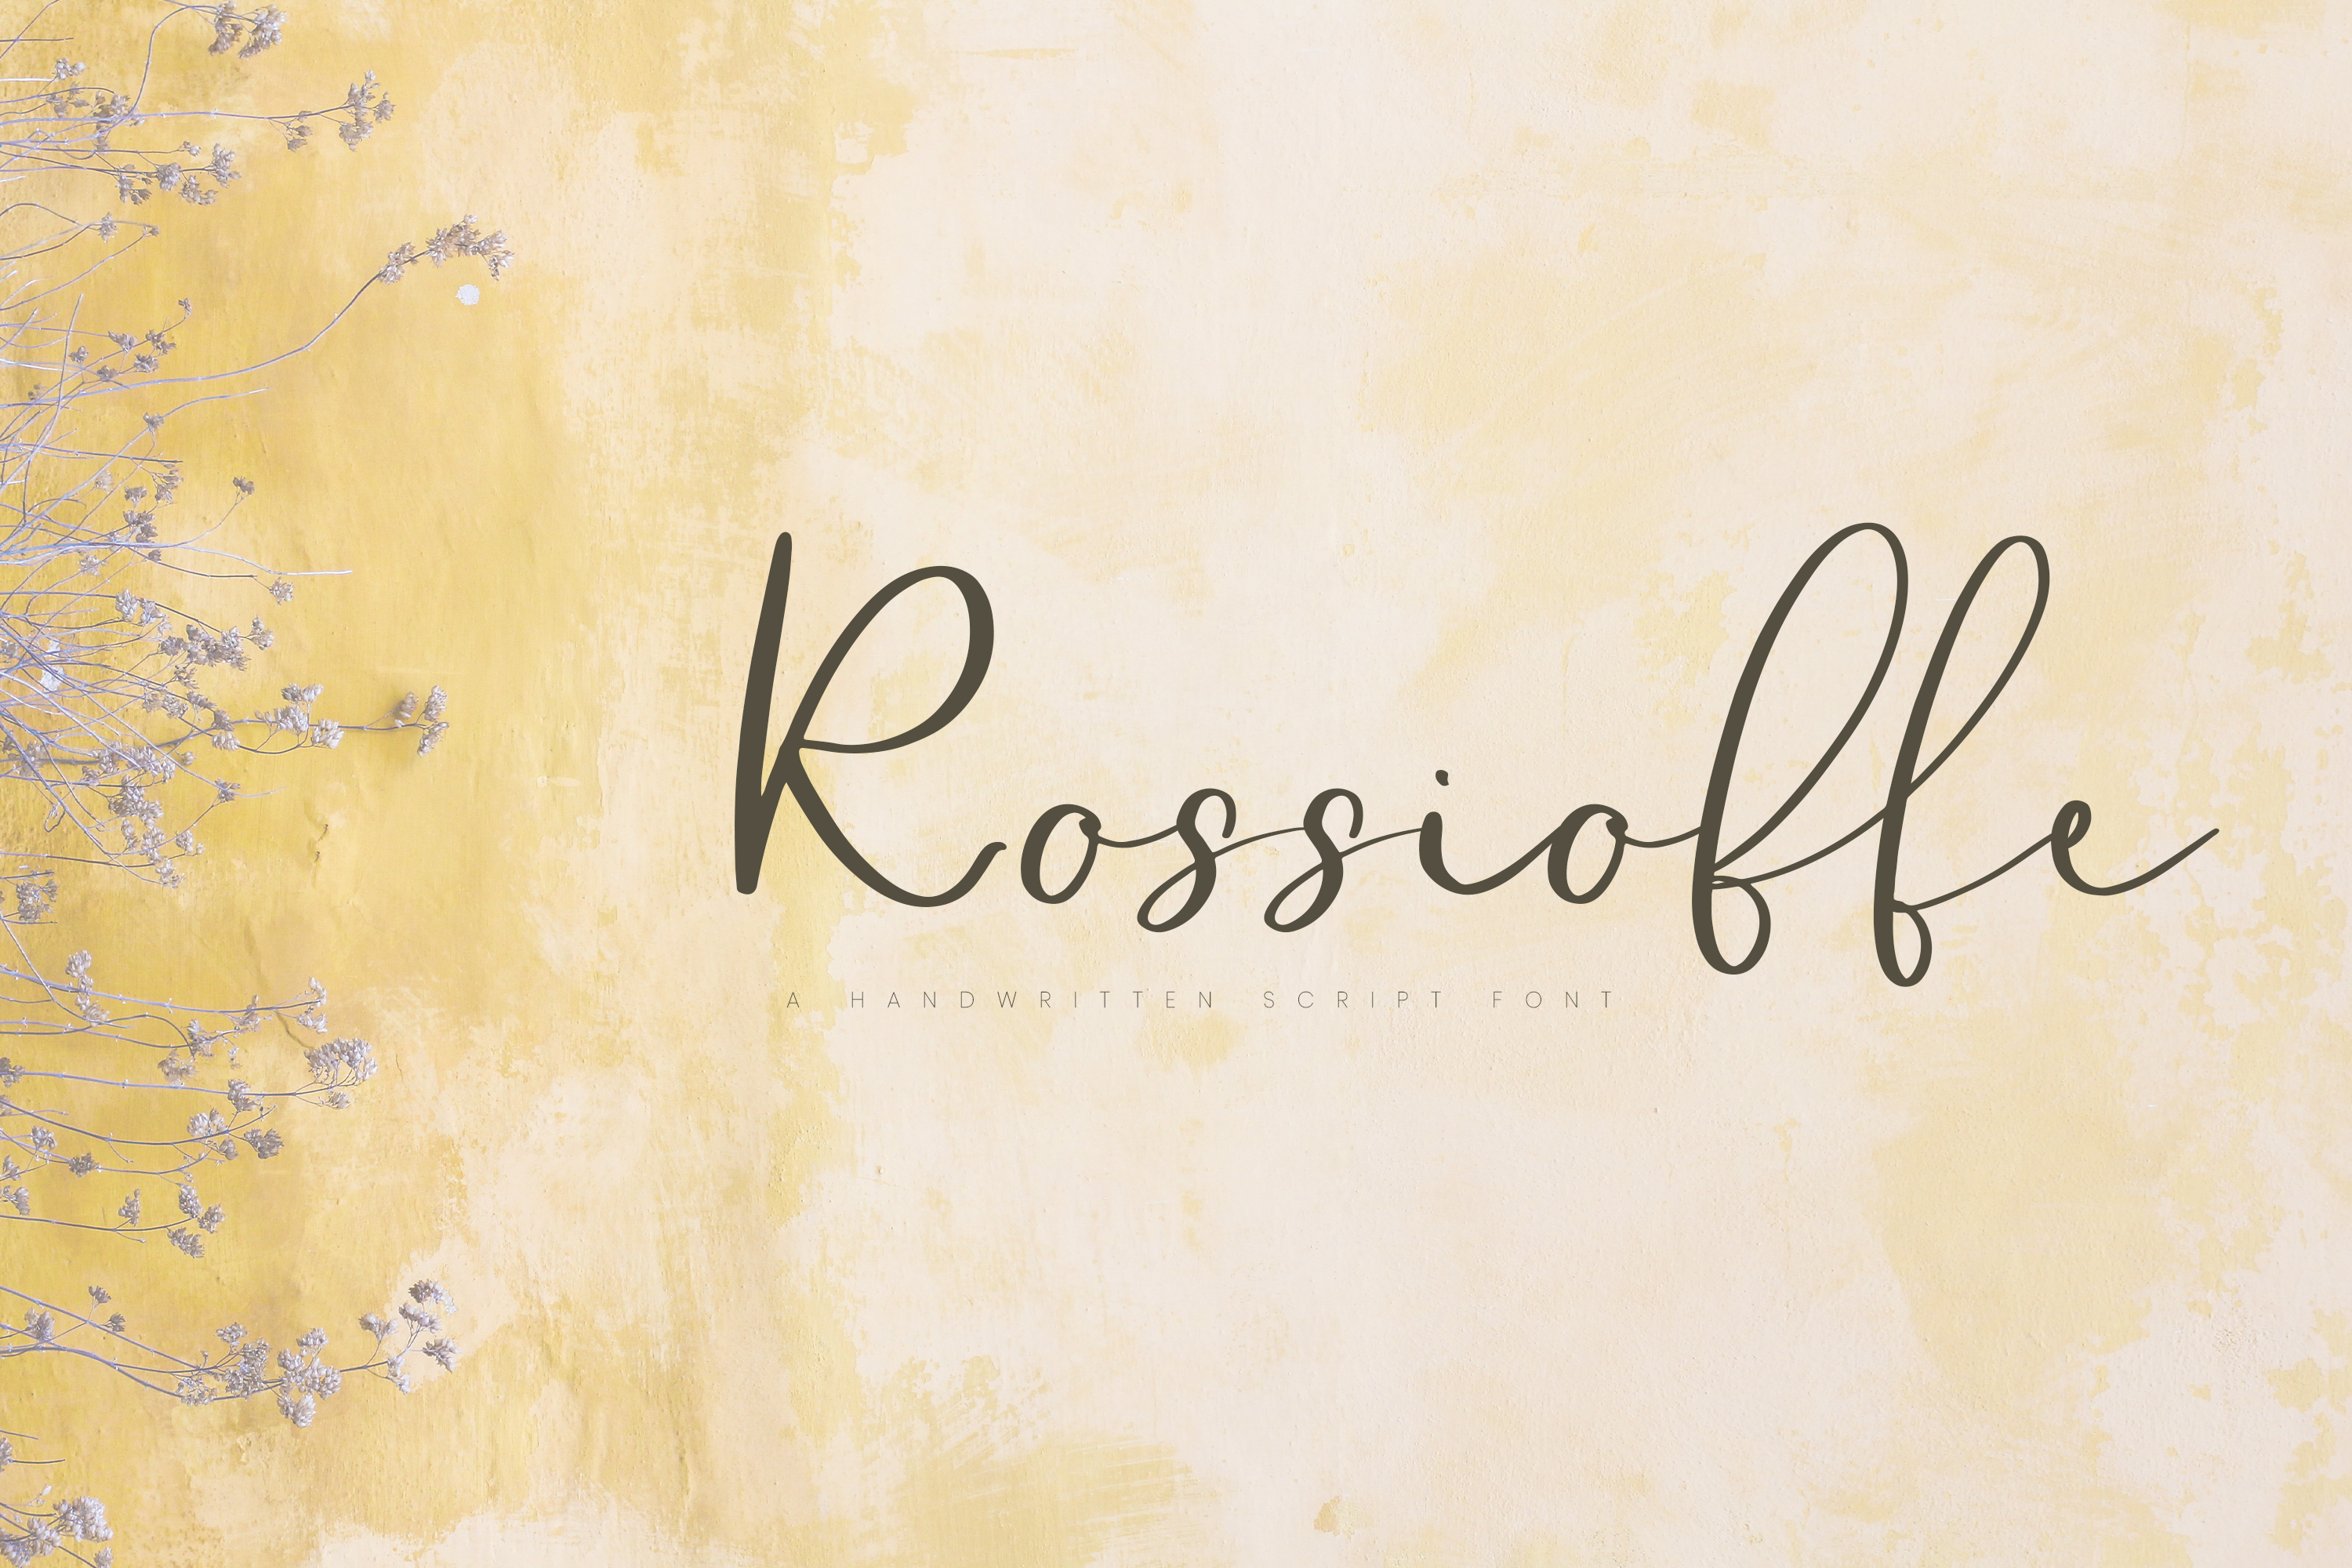 Rossioffe, handwritten script font example image 1